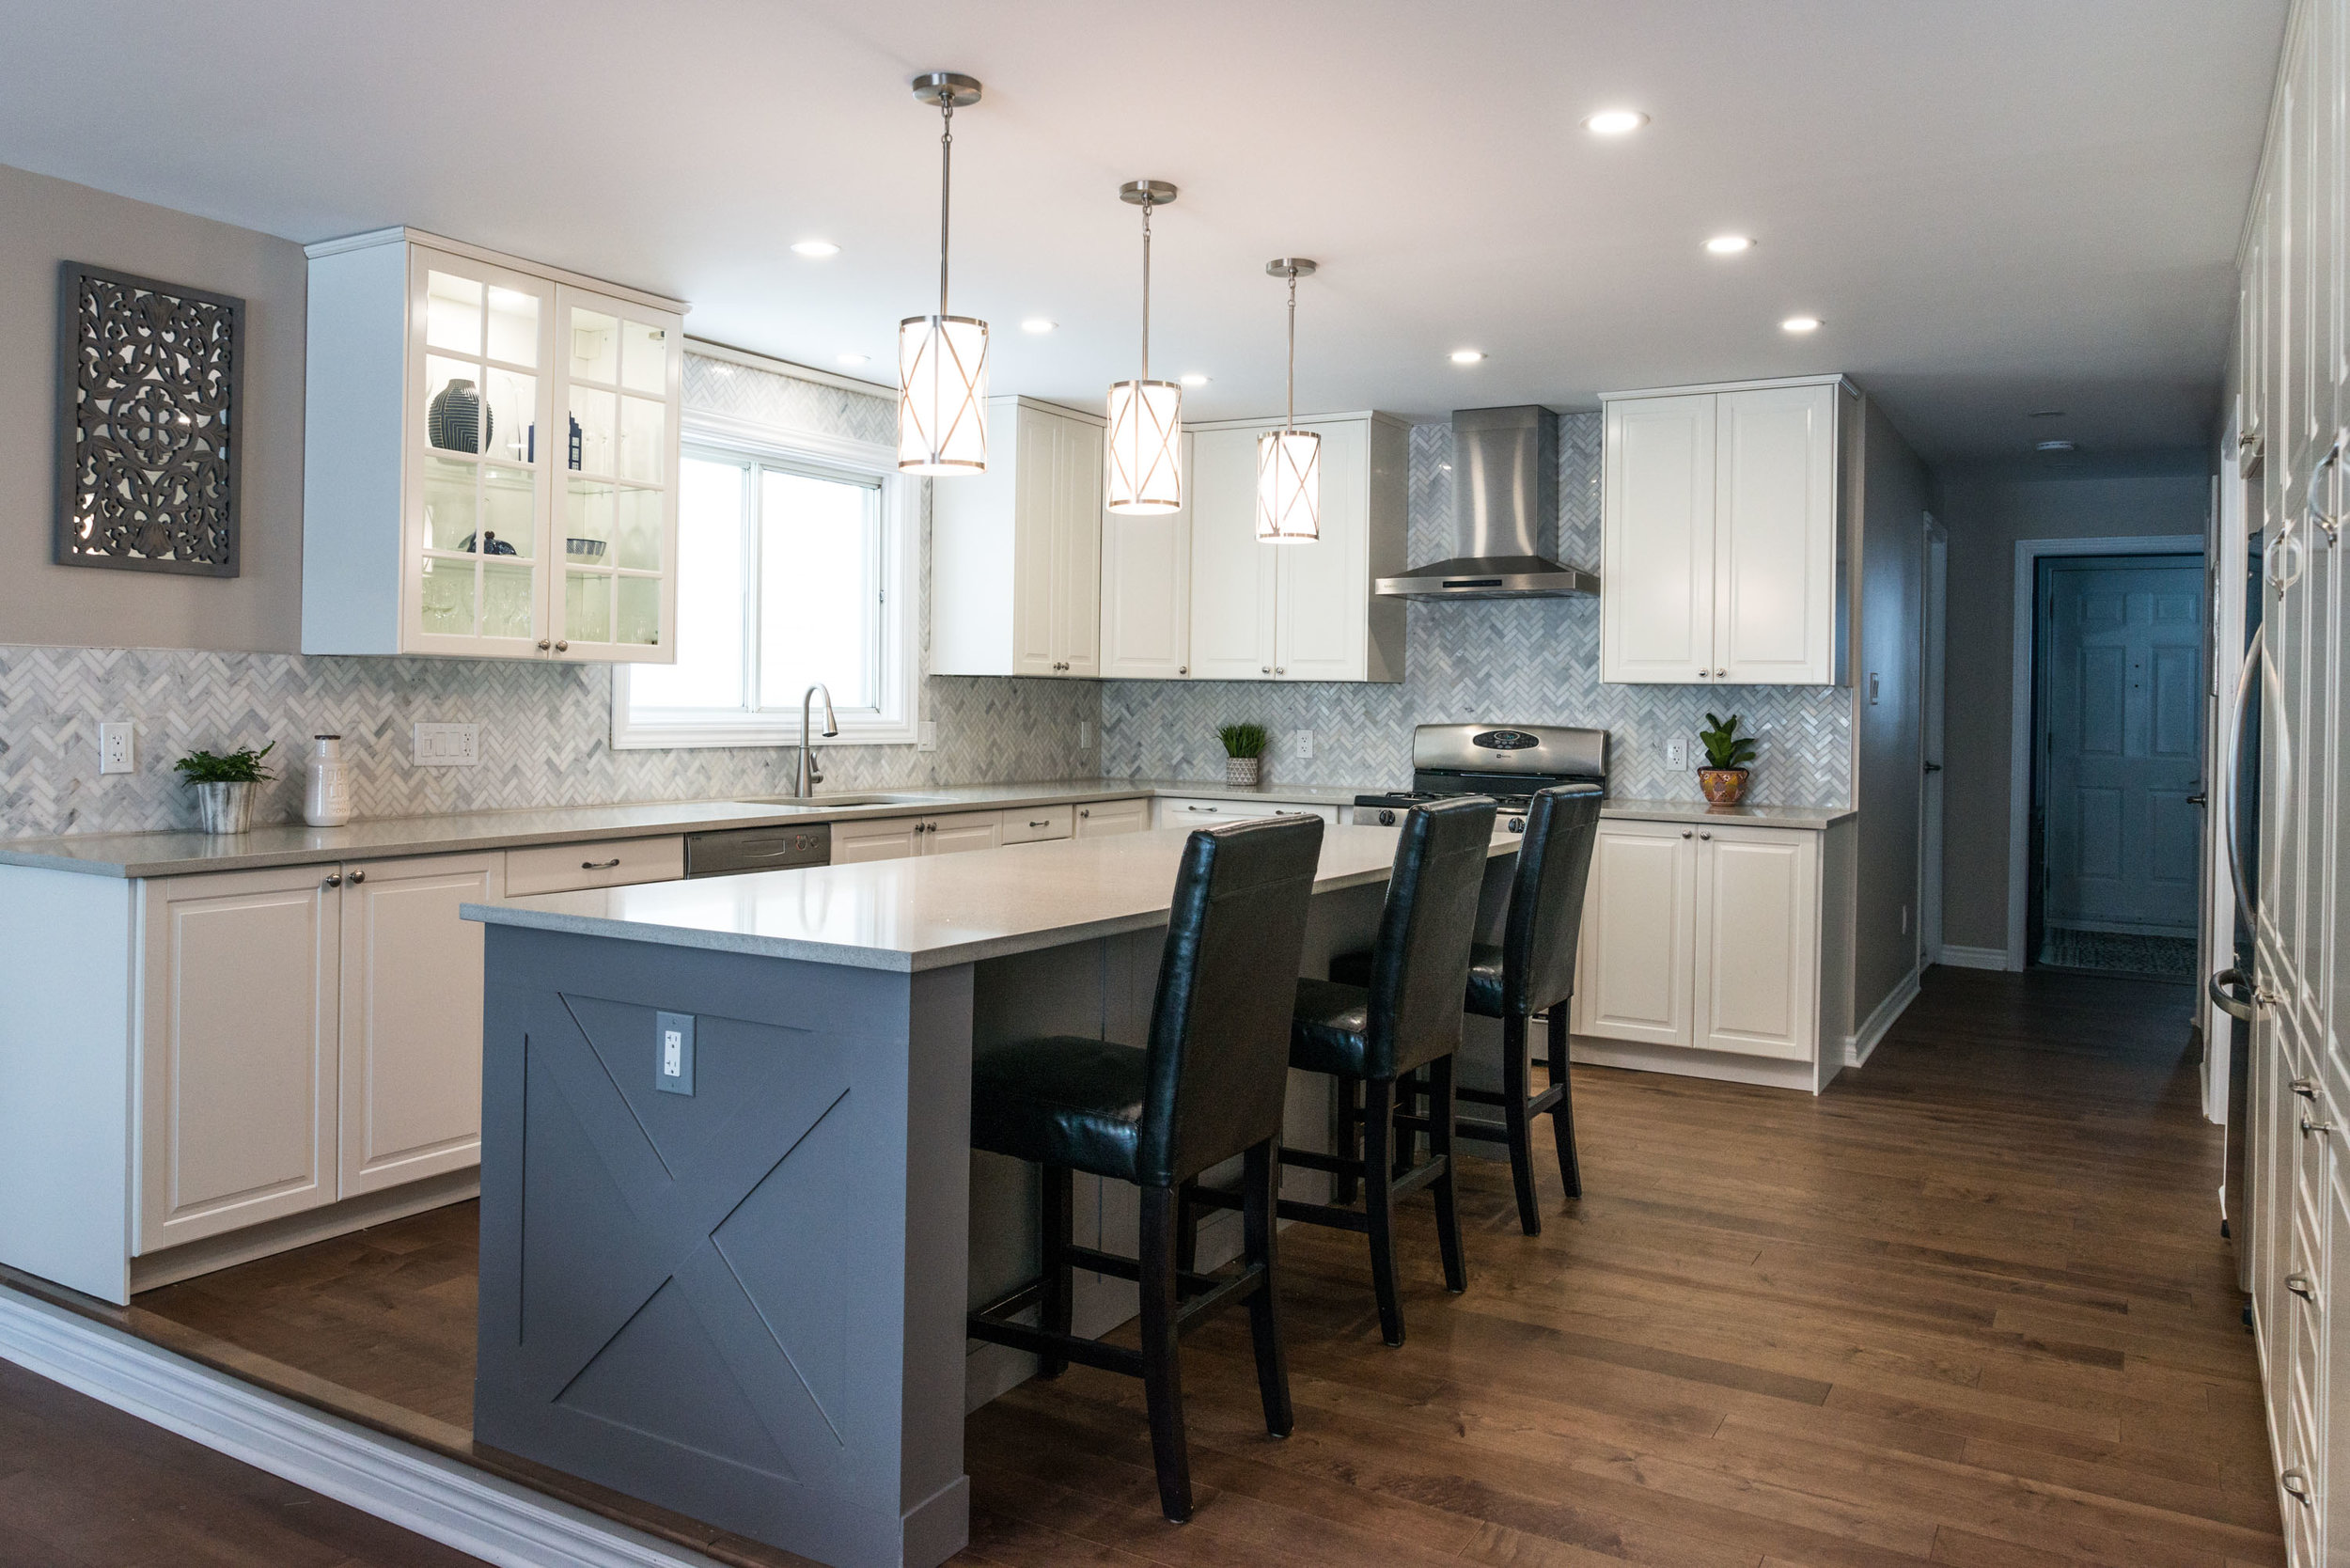 KITCHEN - If you are tired of your out-dated kitchen, we can help design a new functional space. Most older kitchens have a closed in feel, knocking down a load-bearing wall can really open it up.